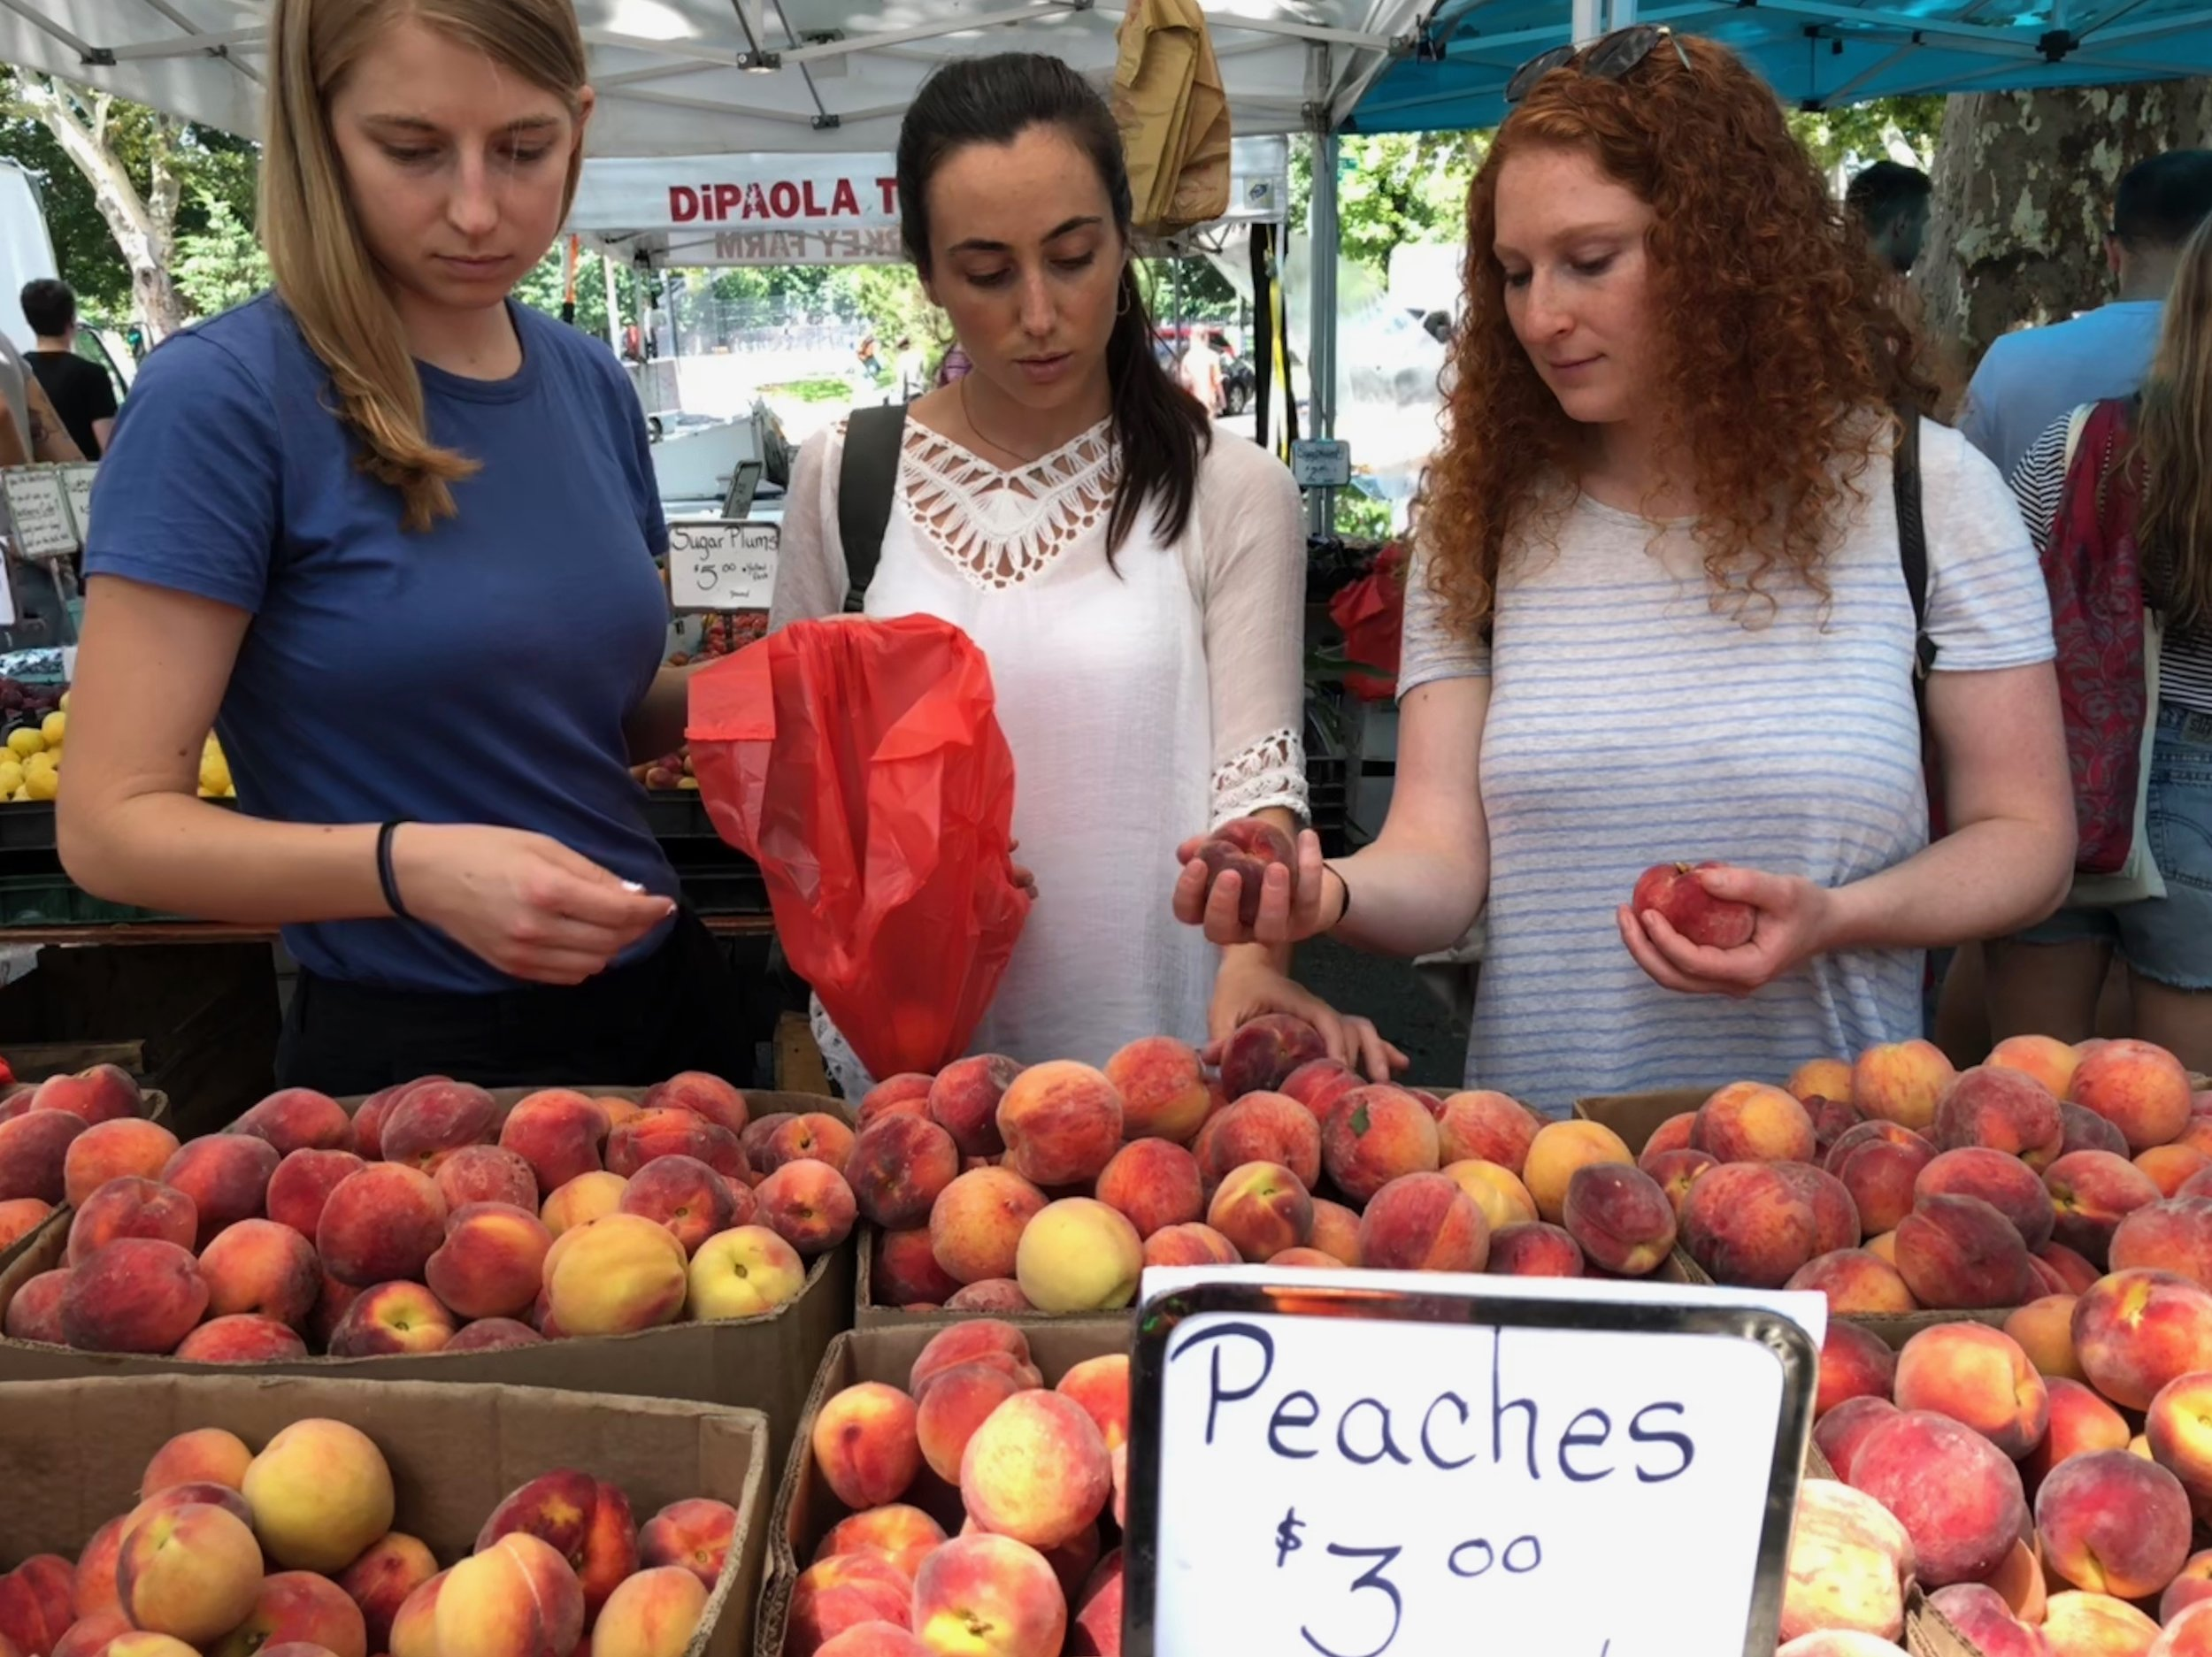 Legitimately candid shot of three dietitians buying peaches at a farmer's market. Full disclosure: we blended them into a cocktail later that day.